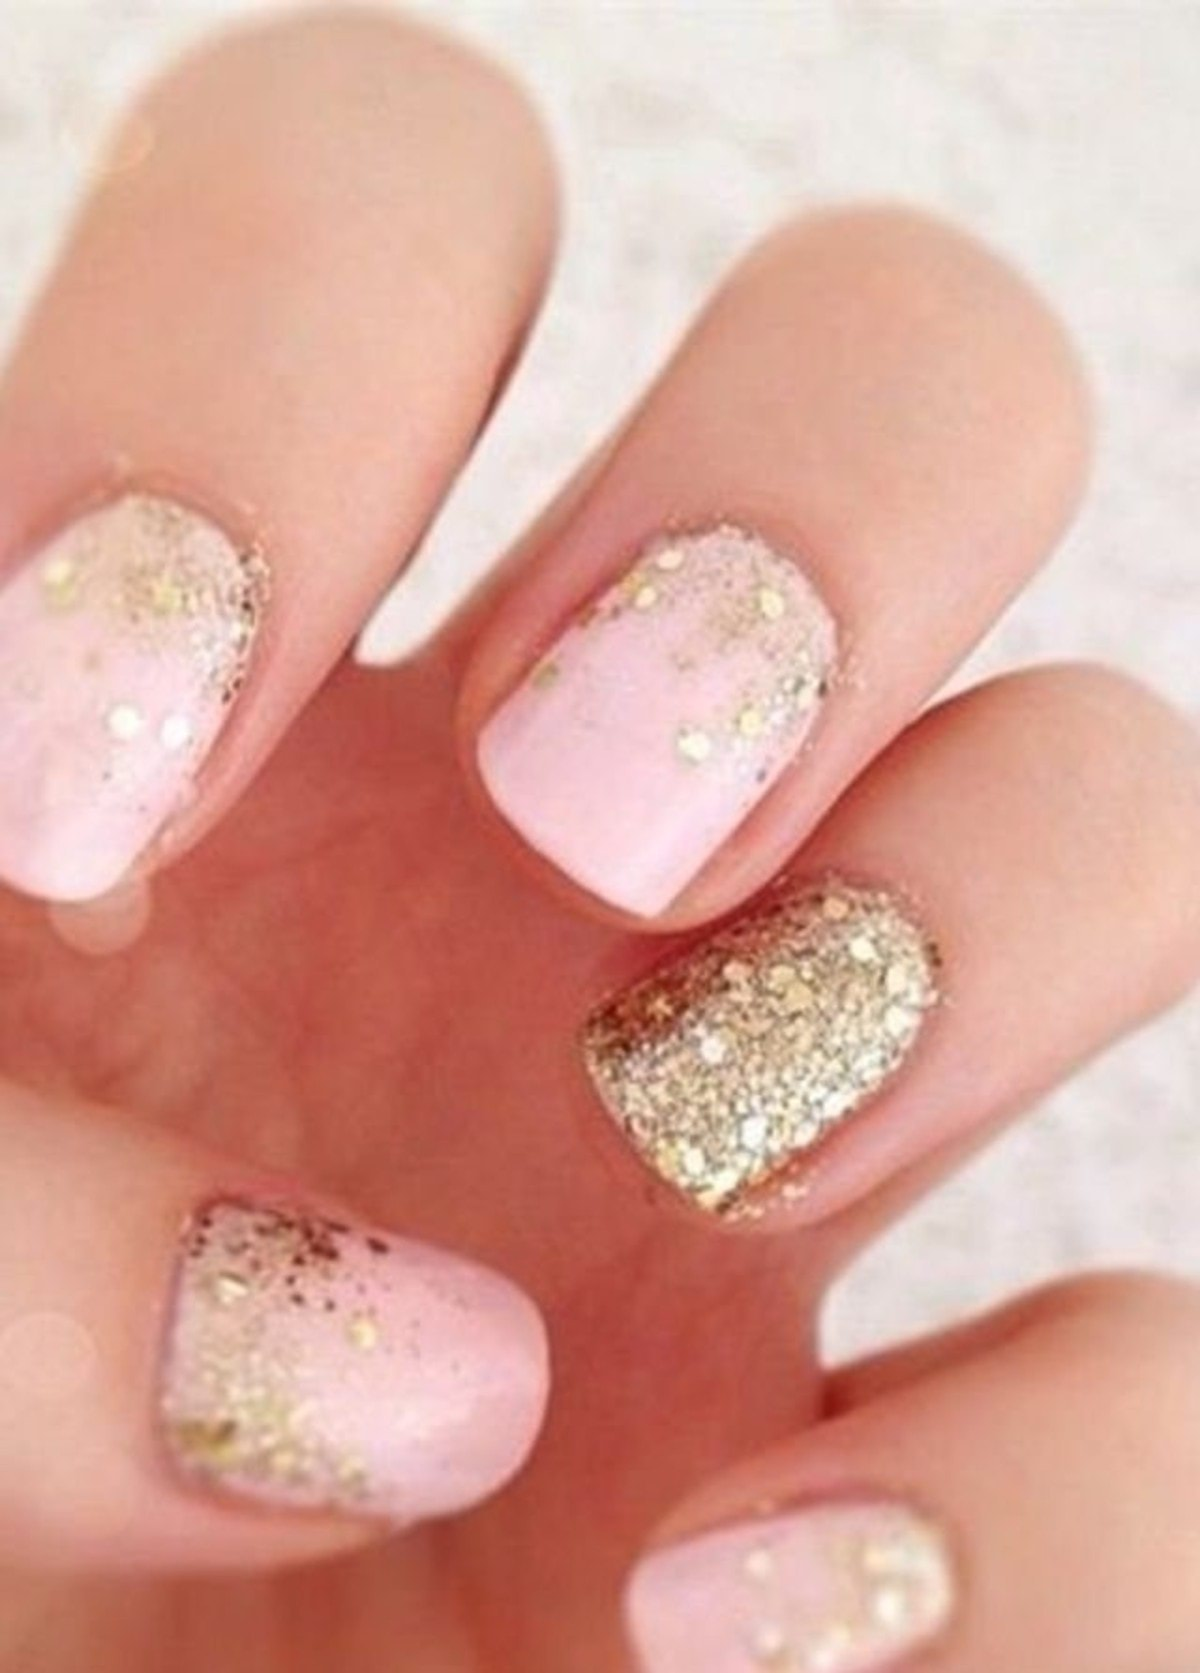 large_Fustany-Beauty-Nails-Pink_Nail_Polish-Pink_Nail_Art-5